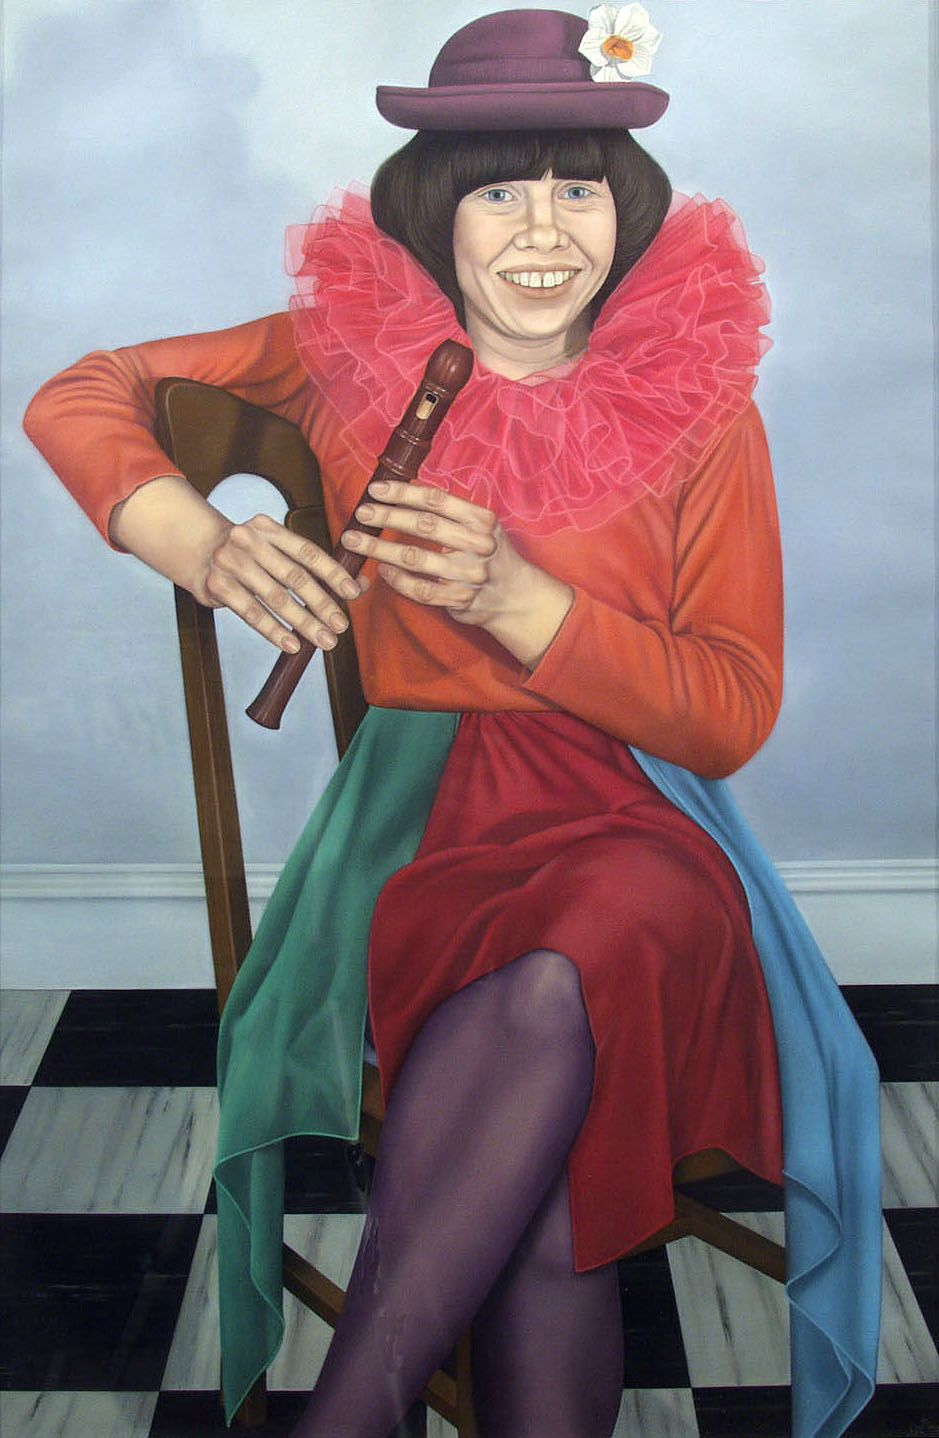 Jane Lund, Self-Portrait as an Entertainer (SOLD), 1978, pastel, 36 1/2 x 24 inches